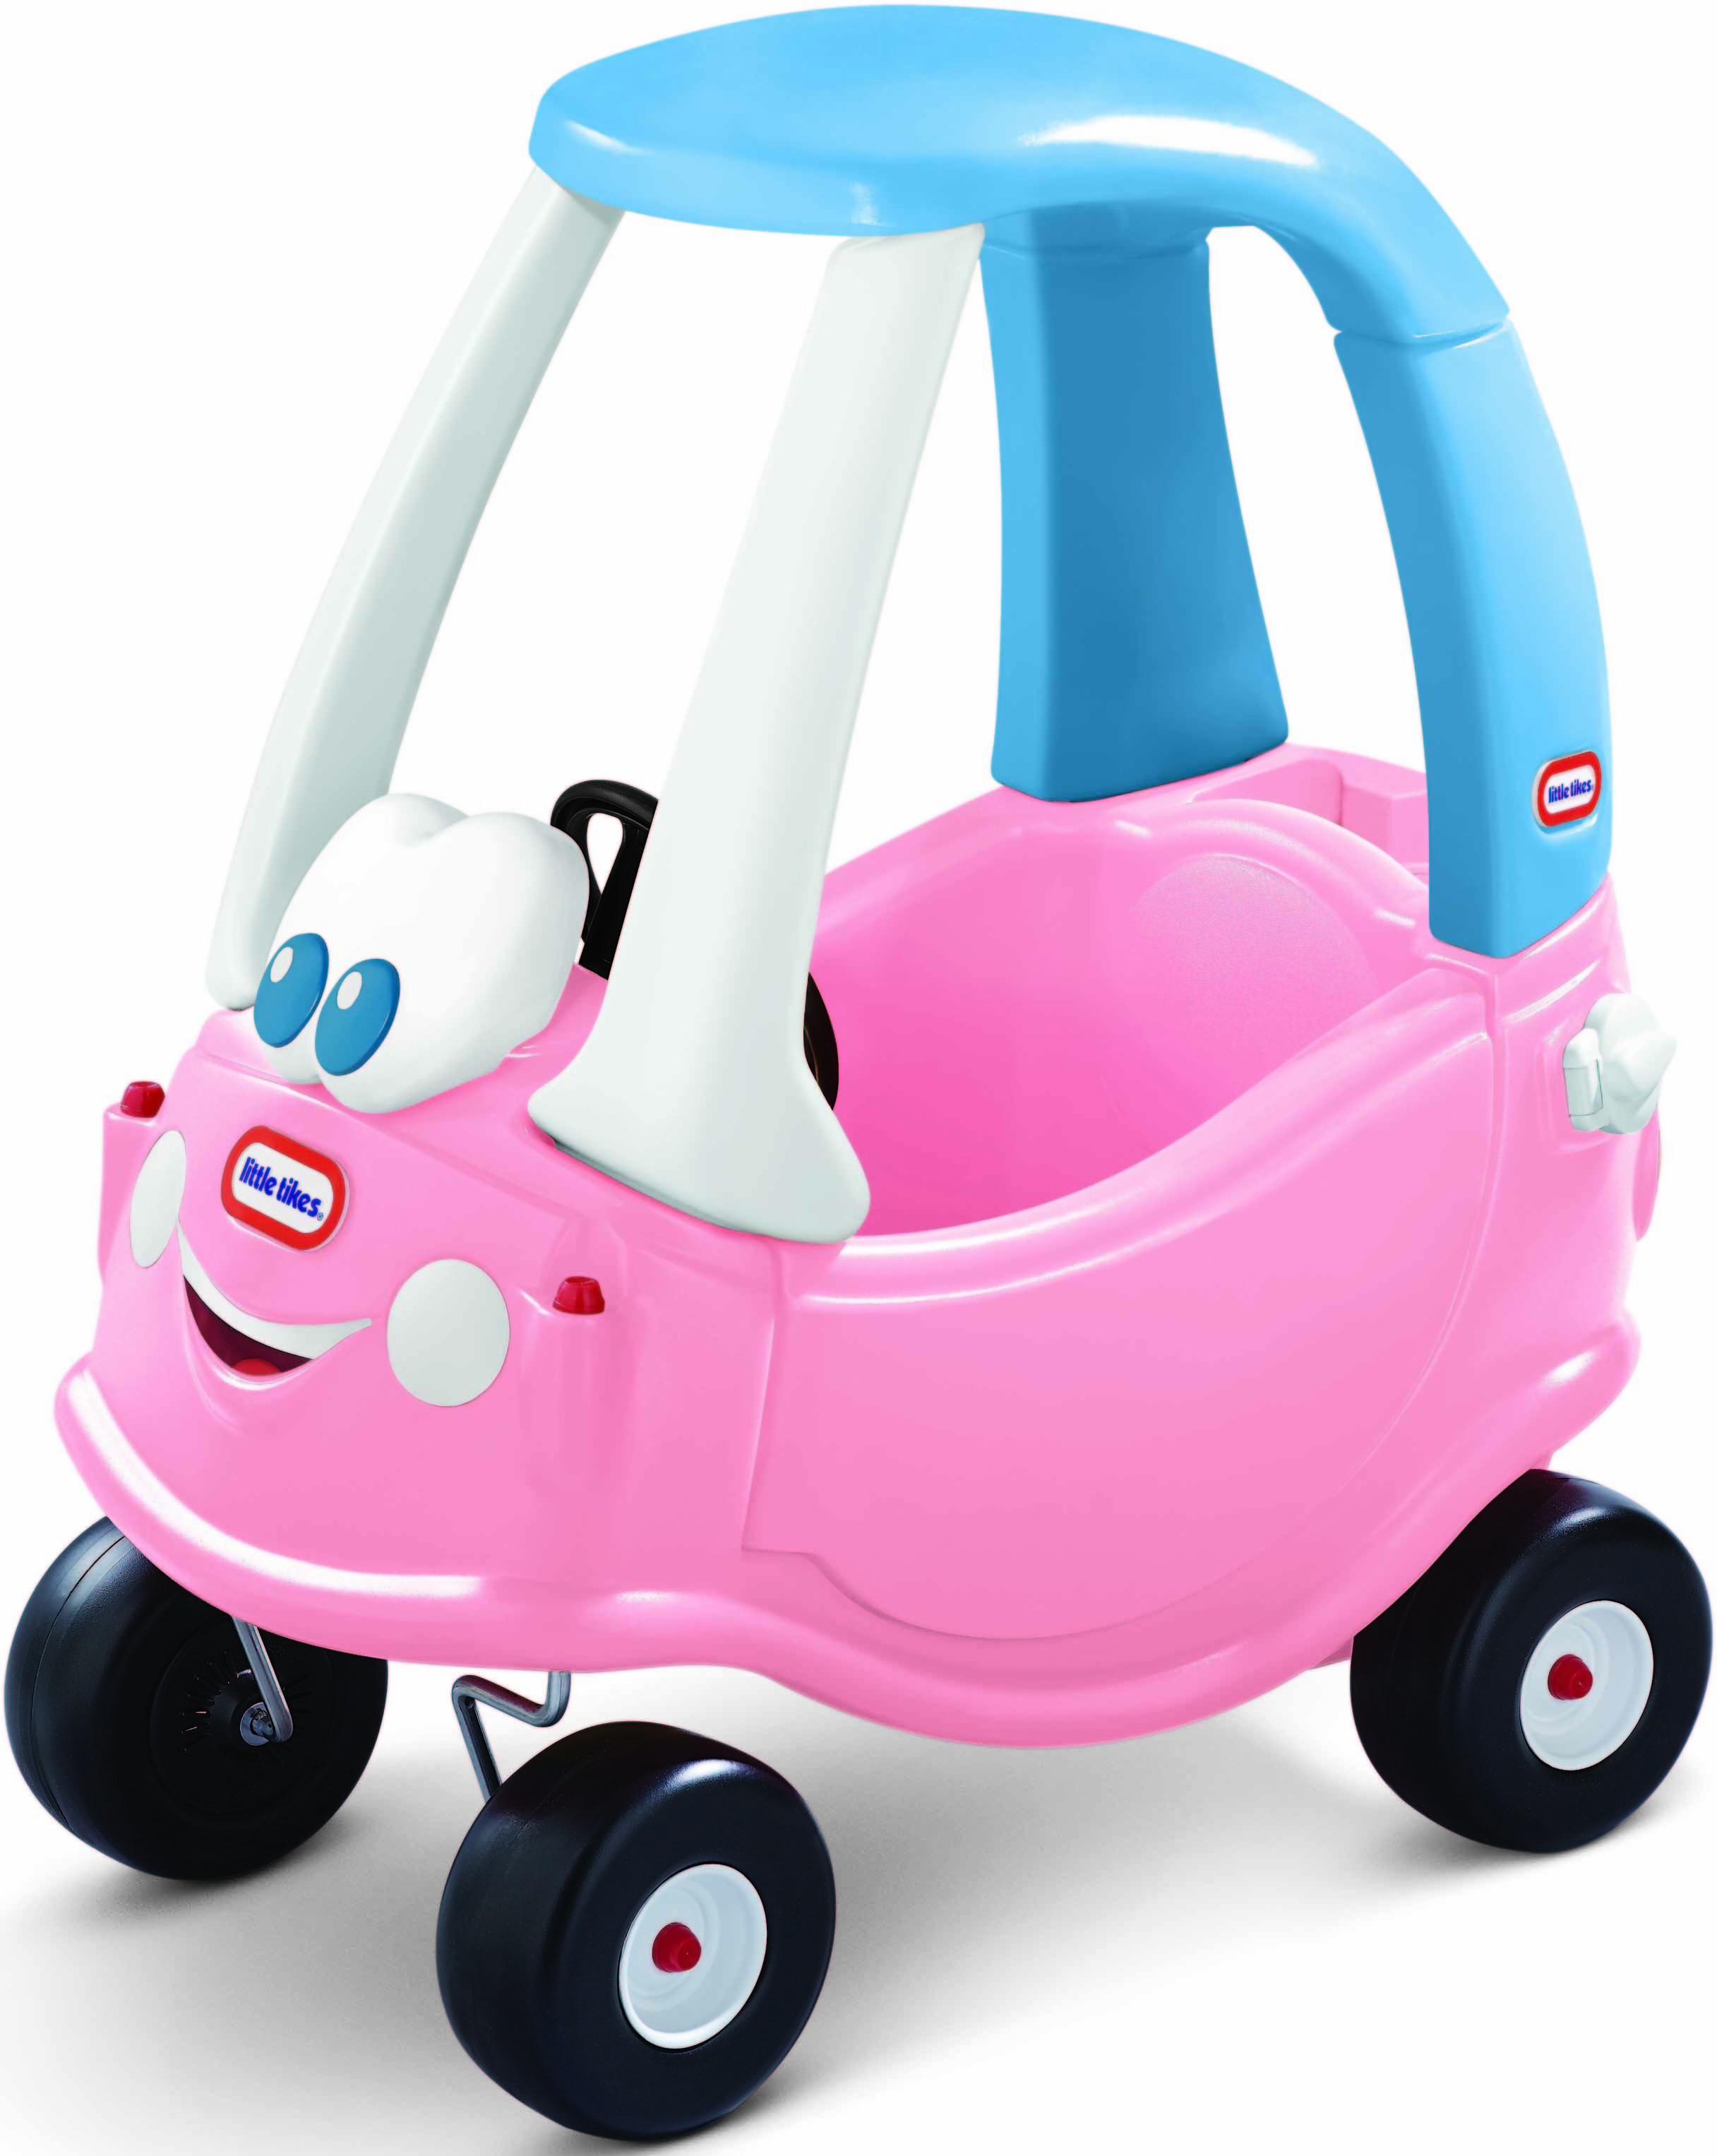 Little Tikes Price List In India Buy Little Tikes Online